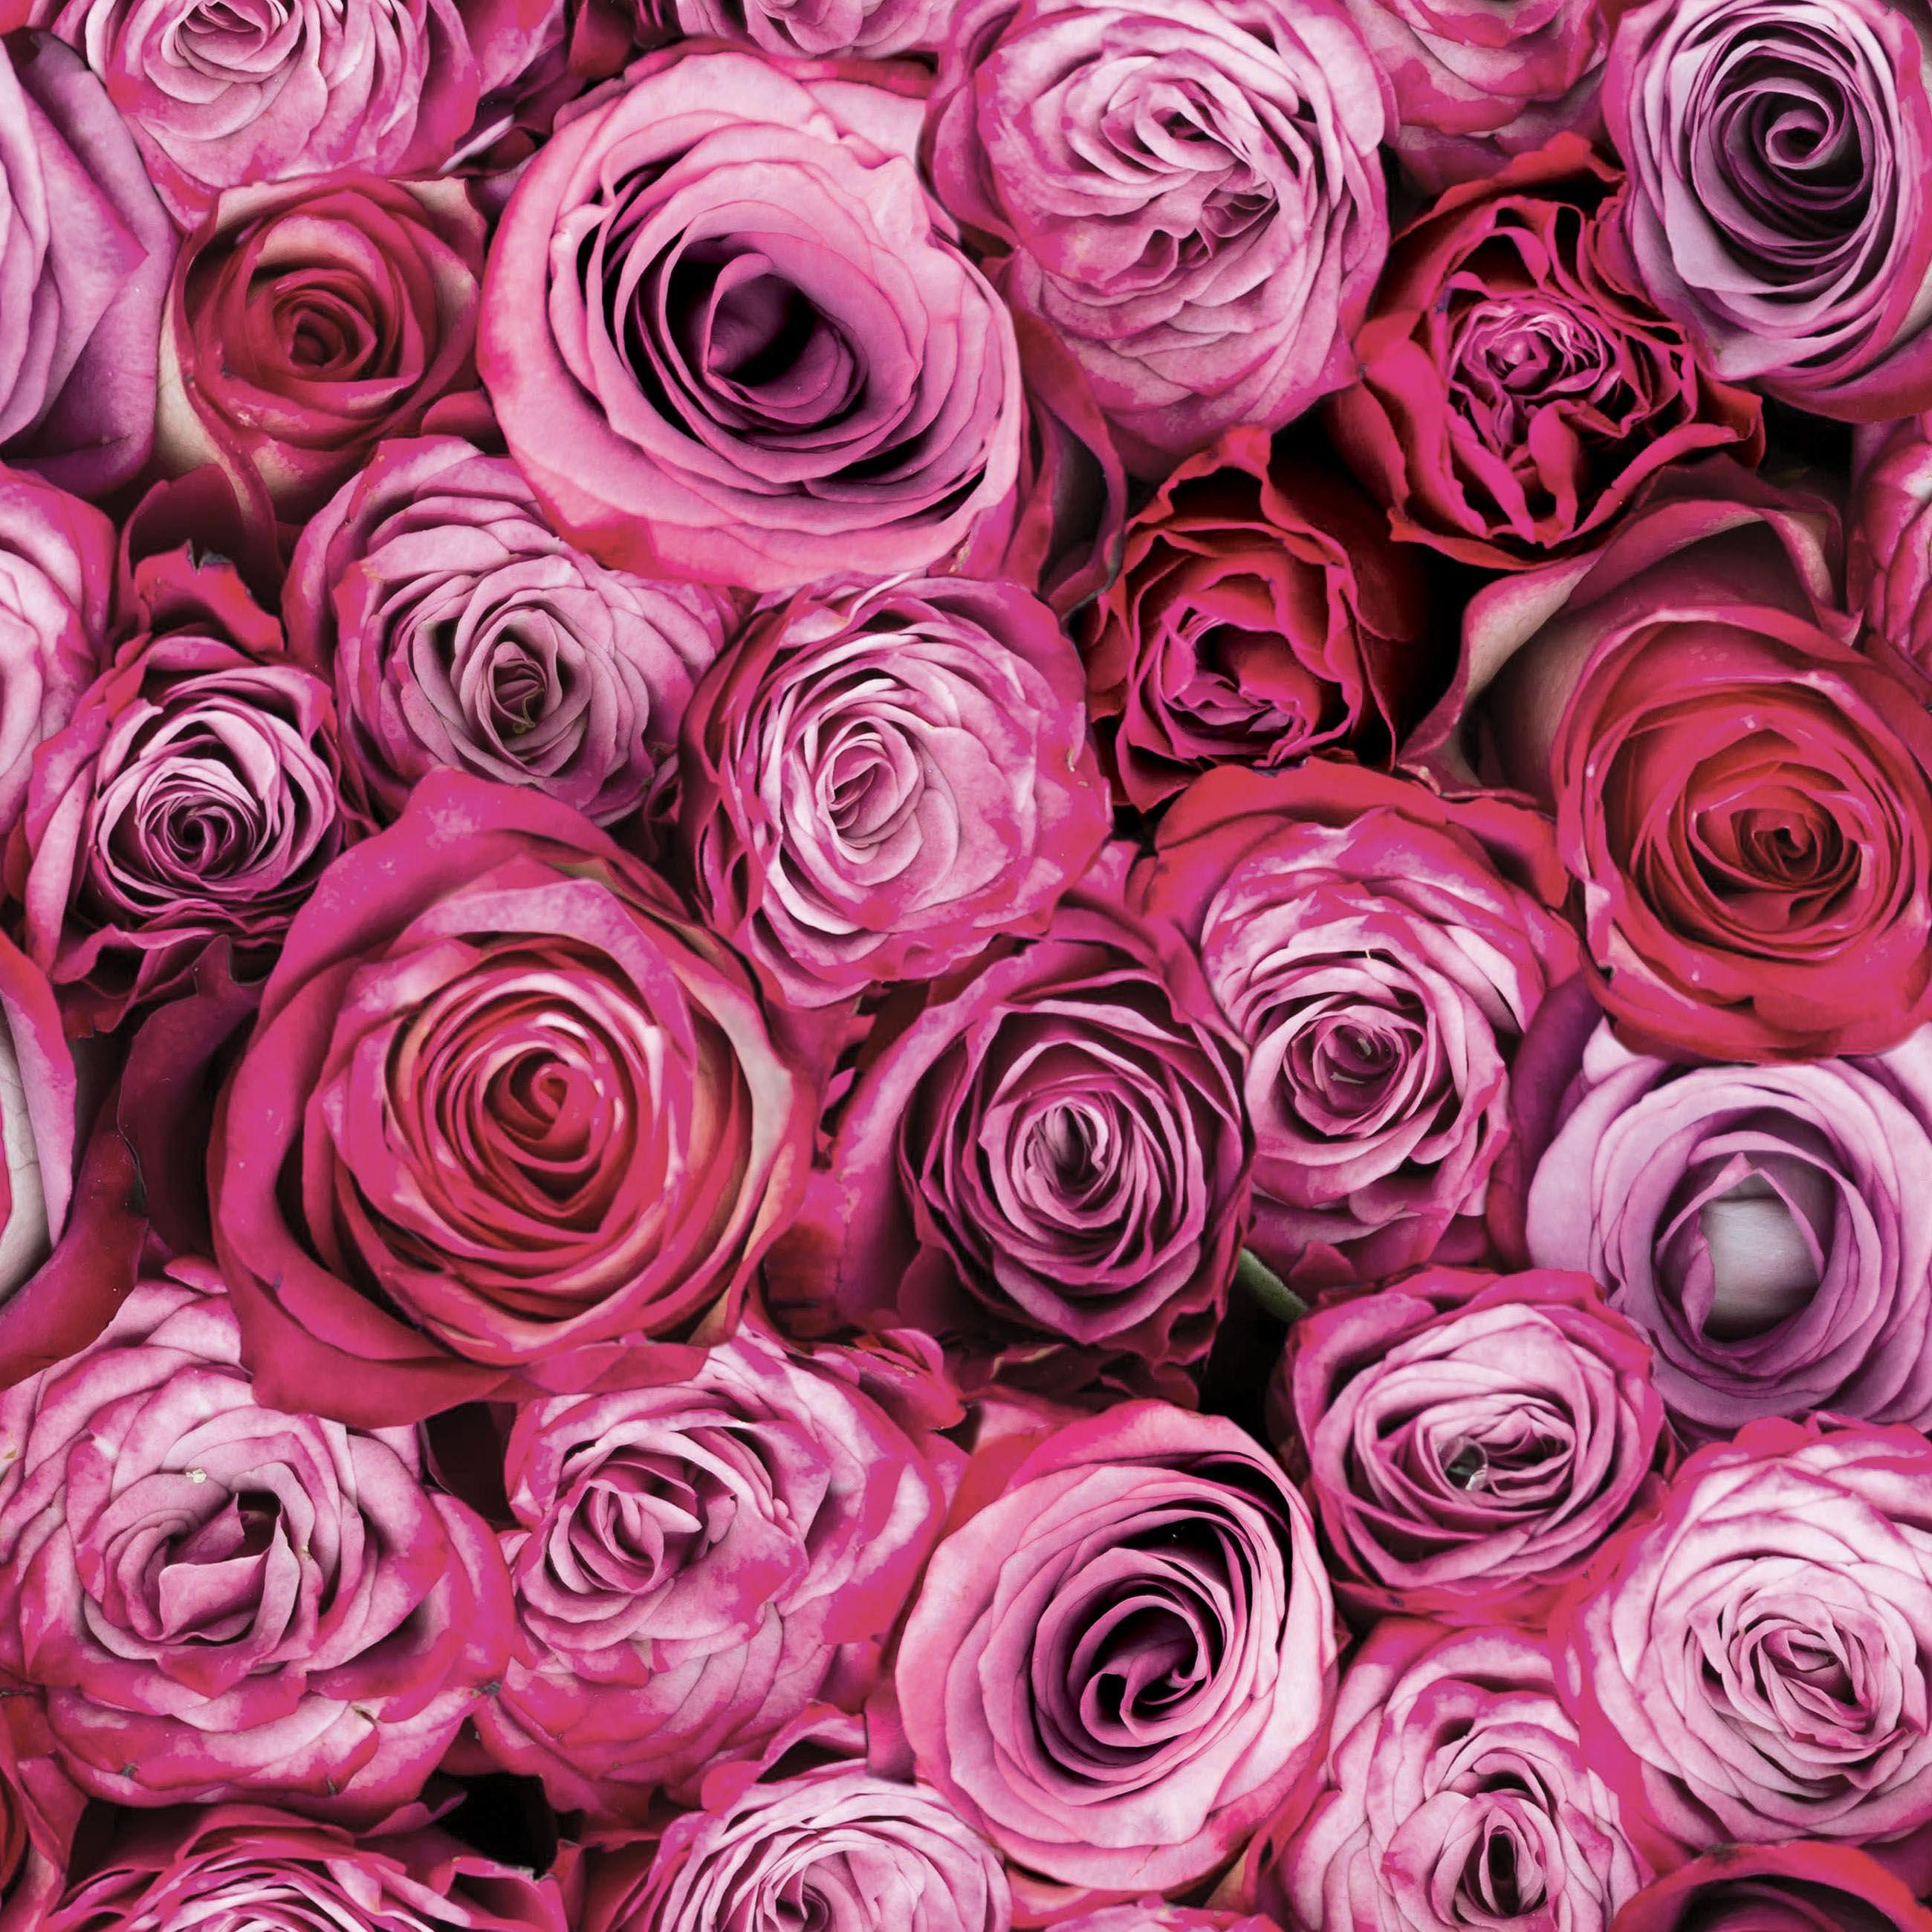 Graham Brown Fresco Pink Roses Wallpaper Departments HD Wallpapers Download Free Images Wallpaper [1000image.com]